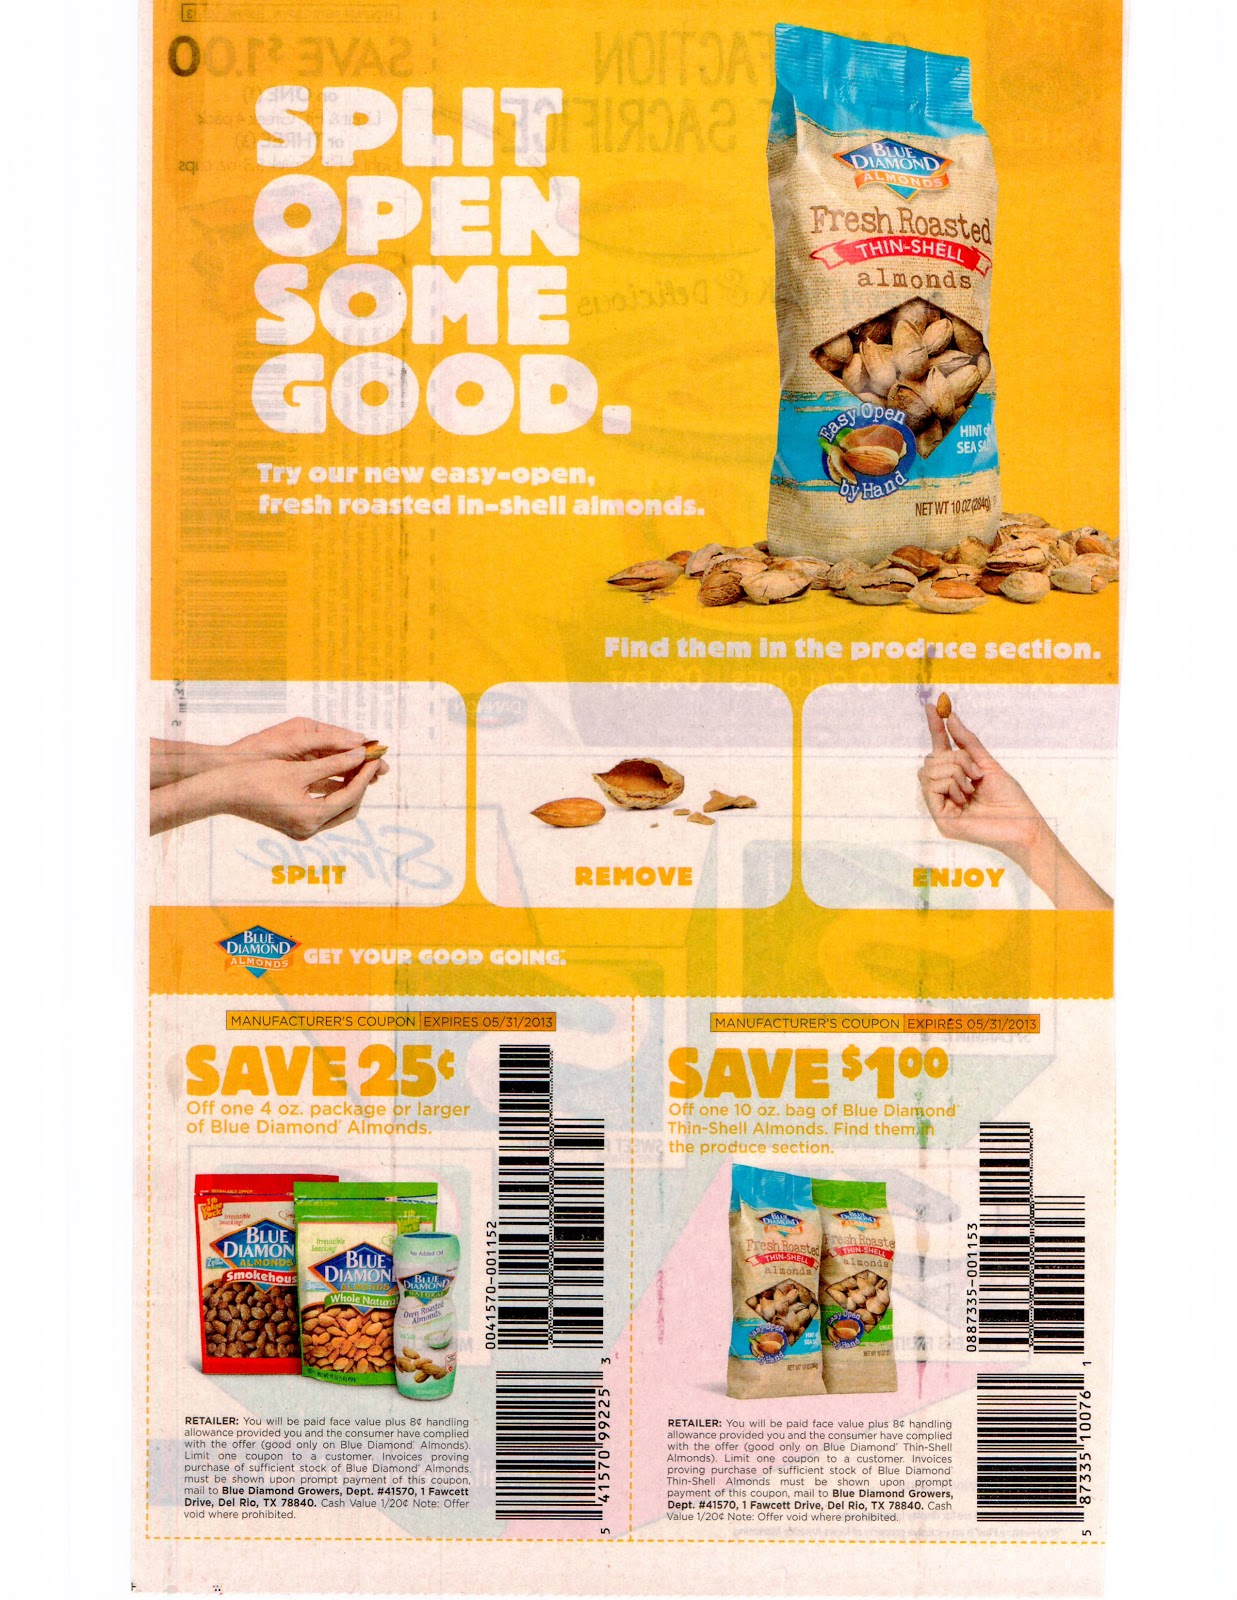 Get coupon inserts in bulk